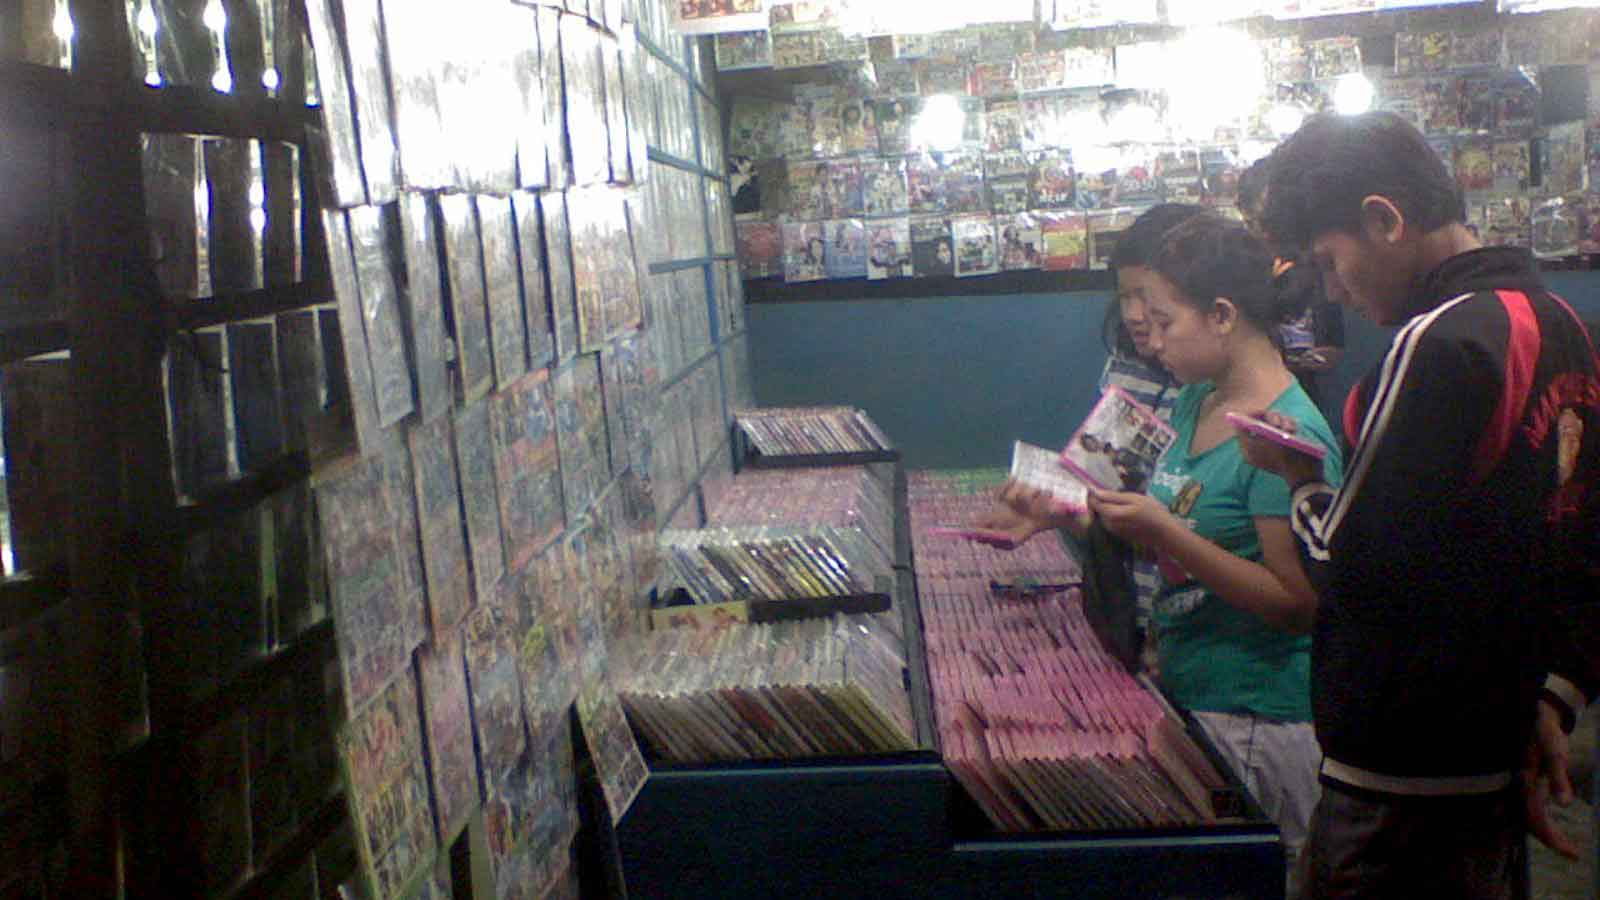 Typical street vendors of pirated DVD and VCD in Indonesia.